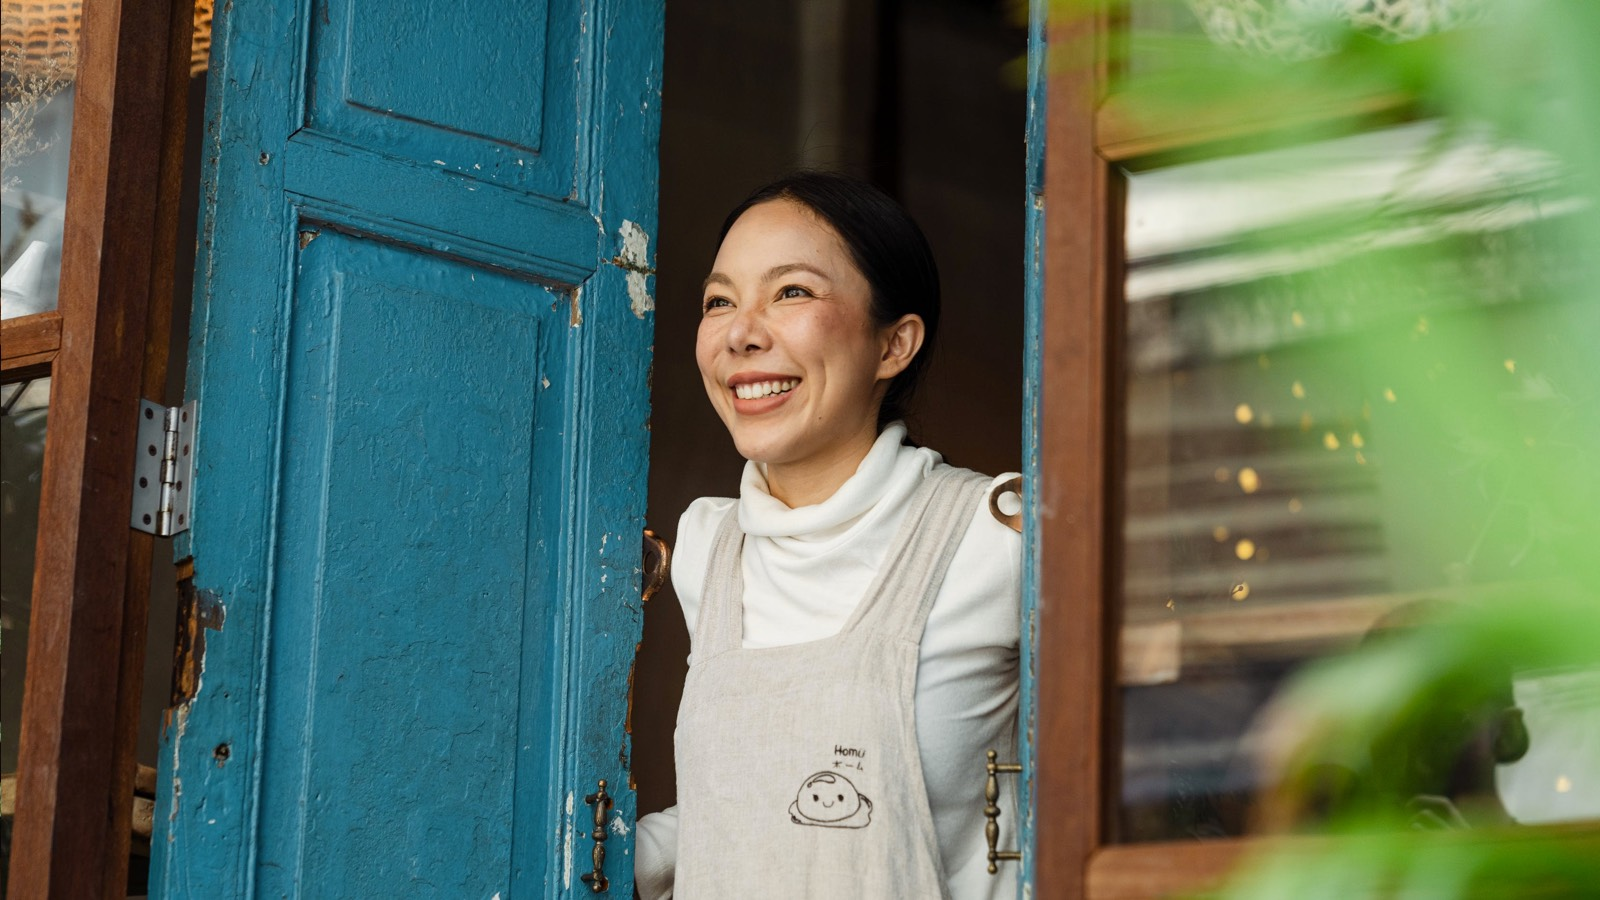 A woman opening door greeting a customer